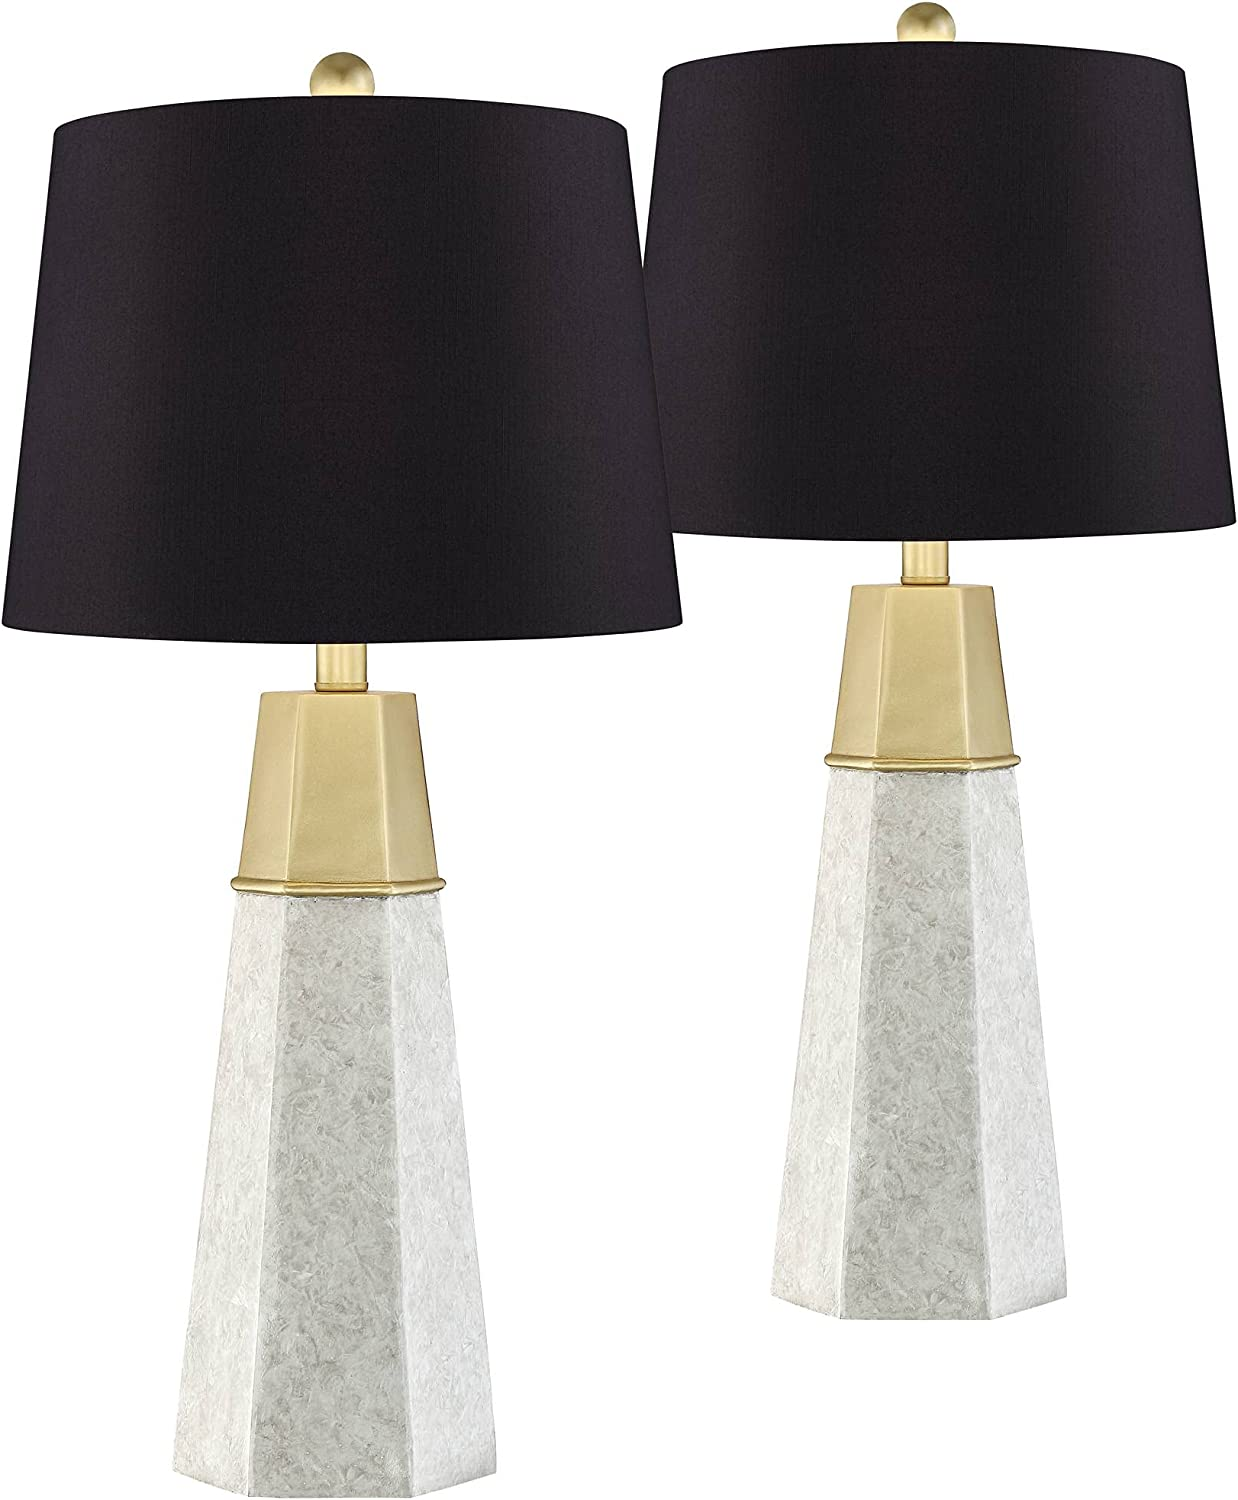 Deluxe Julie Mid Brand new Century Modern Contemporary Table Faux Lamps of 2 Set